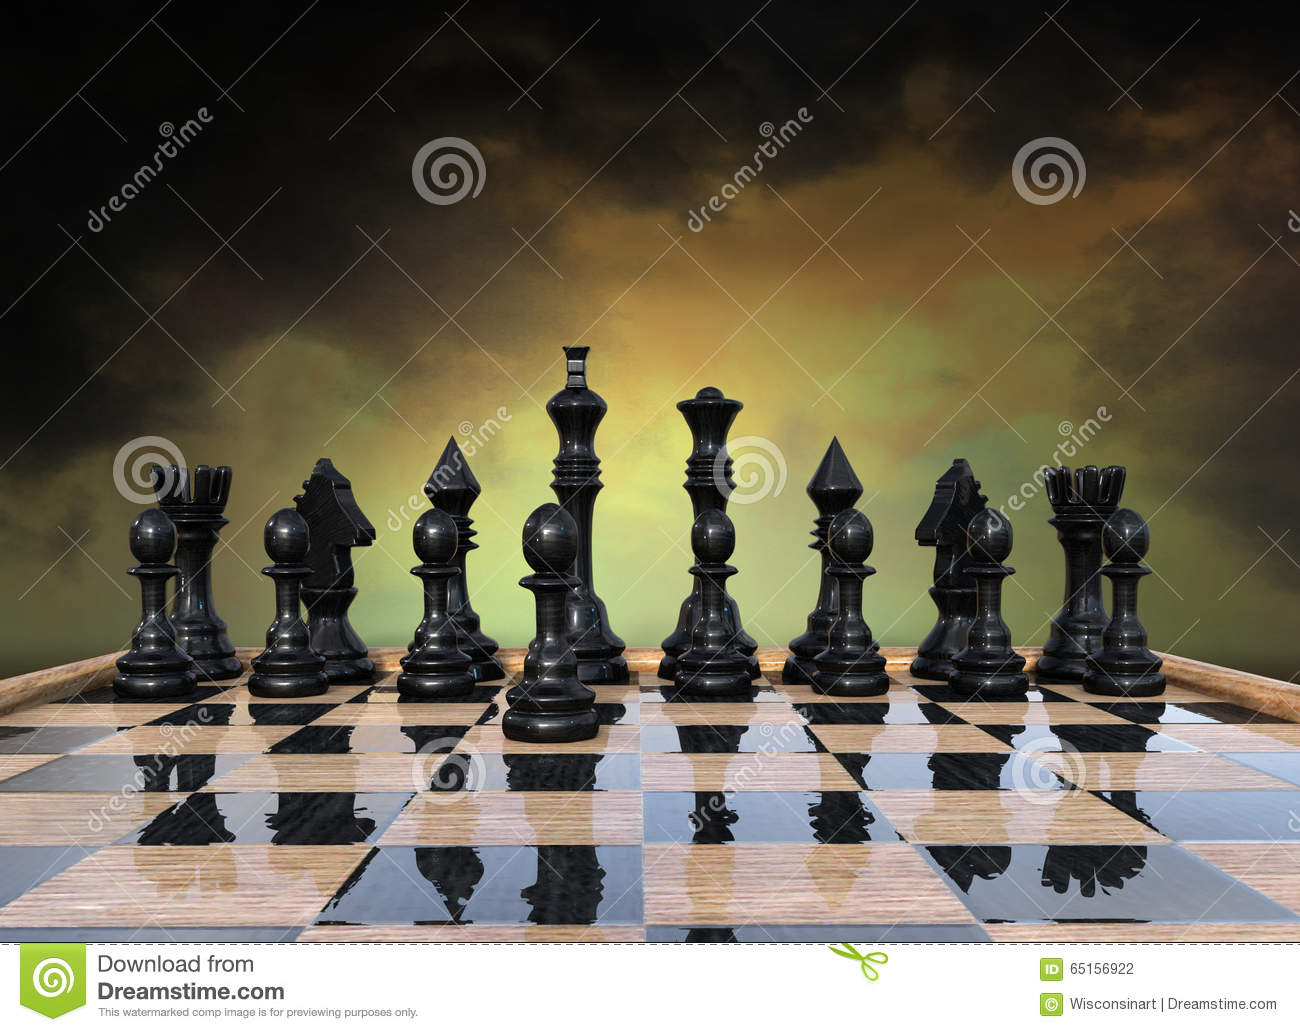 Surreal, Ominous Chess, Game Strategy